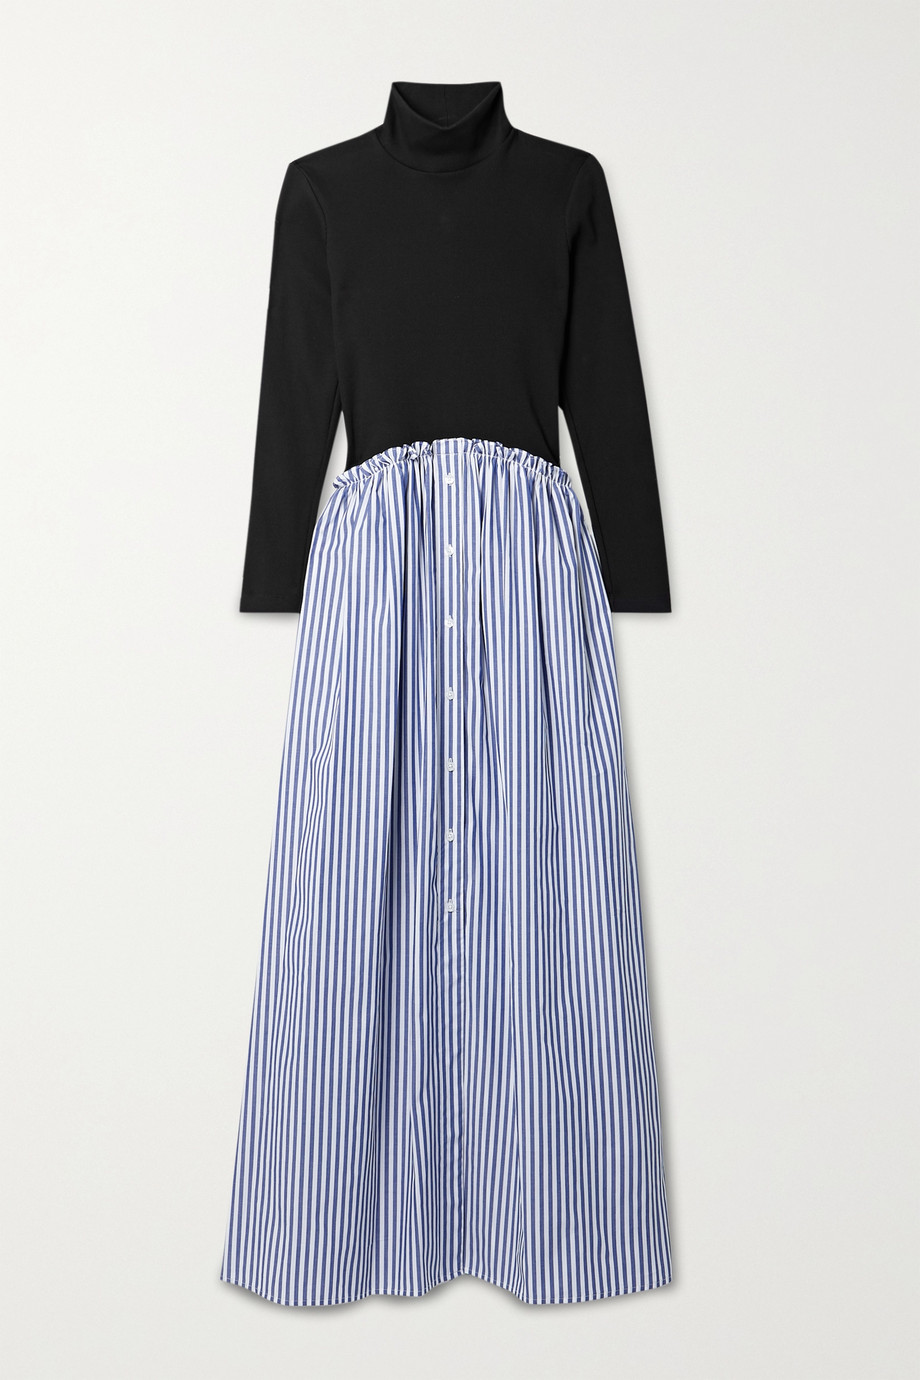 Rosie Assoulin Striped cotton-blend voile and ribbed jersey maxi dress